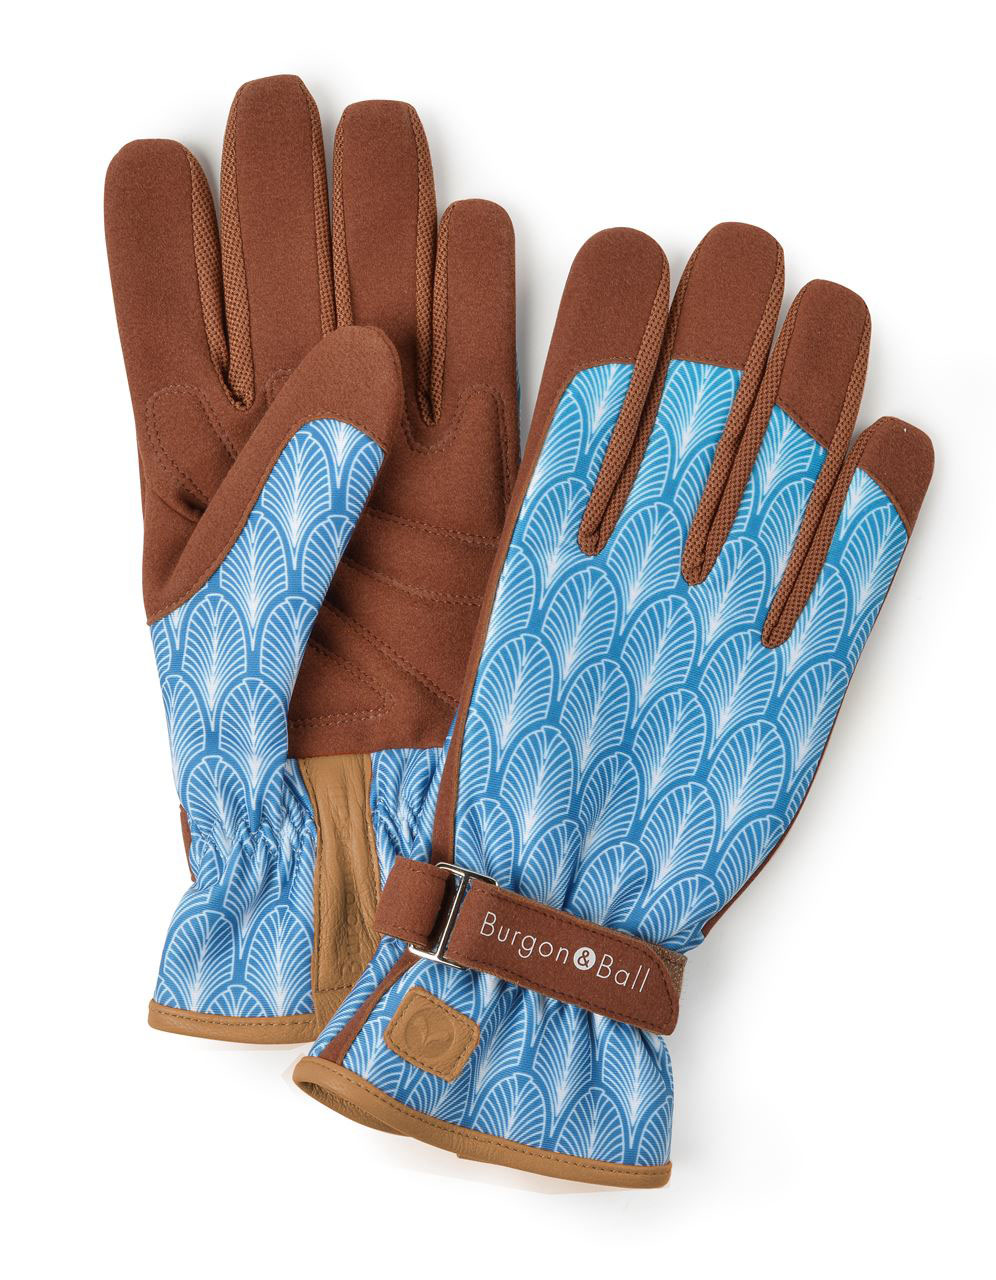 Gatsby Love the Glove Burgon & Ball 0114 233 8262; www.burgonandball.com